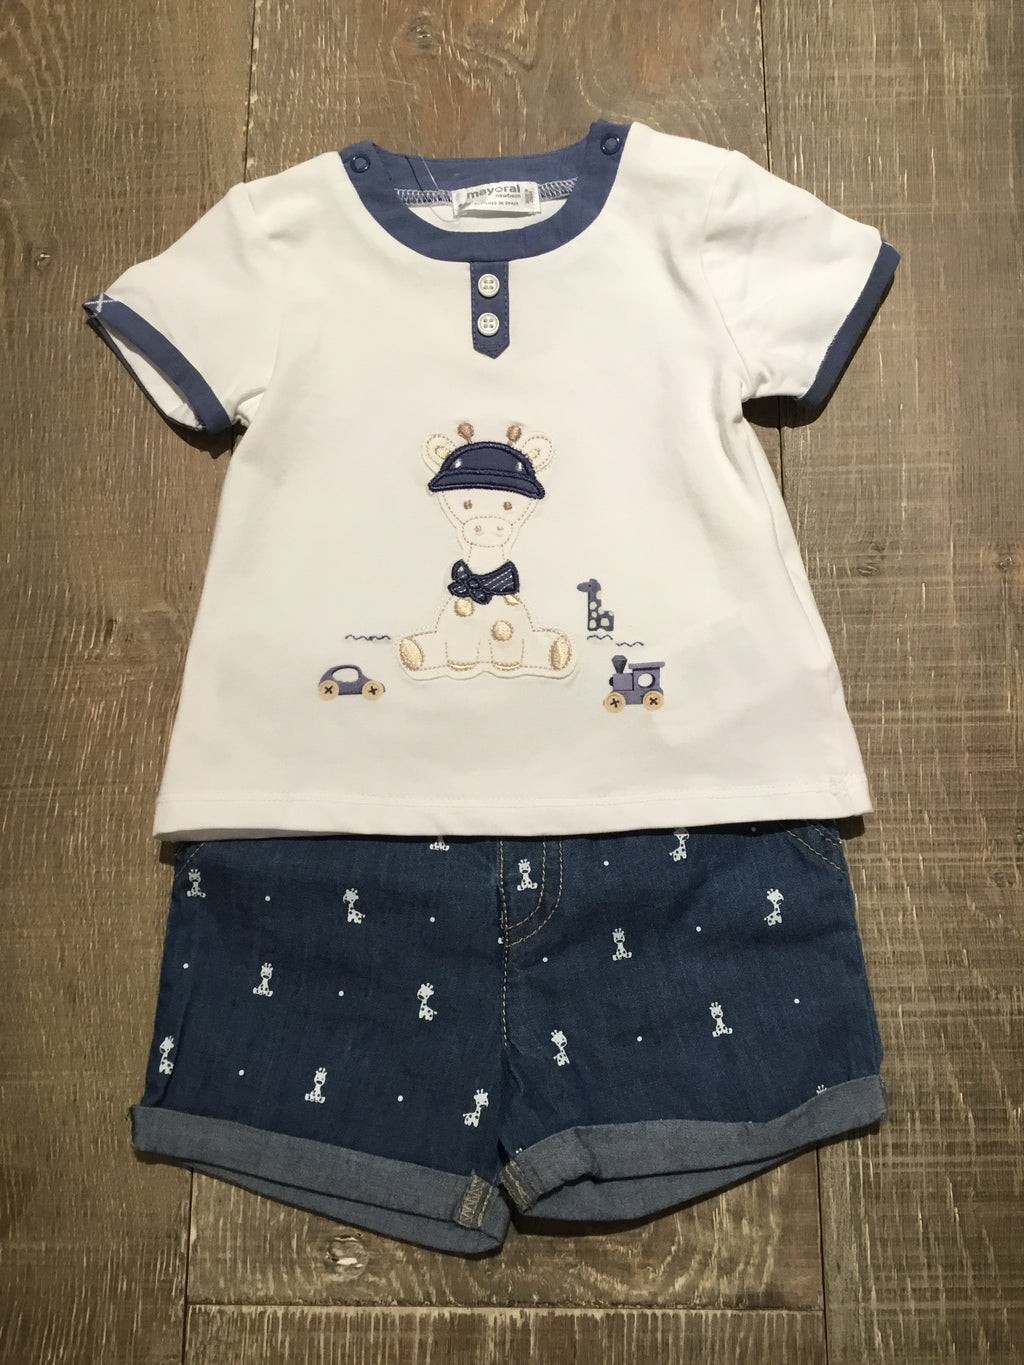 Giraffe Top & Shorts Set